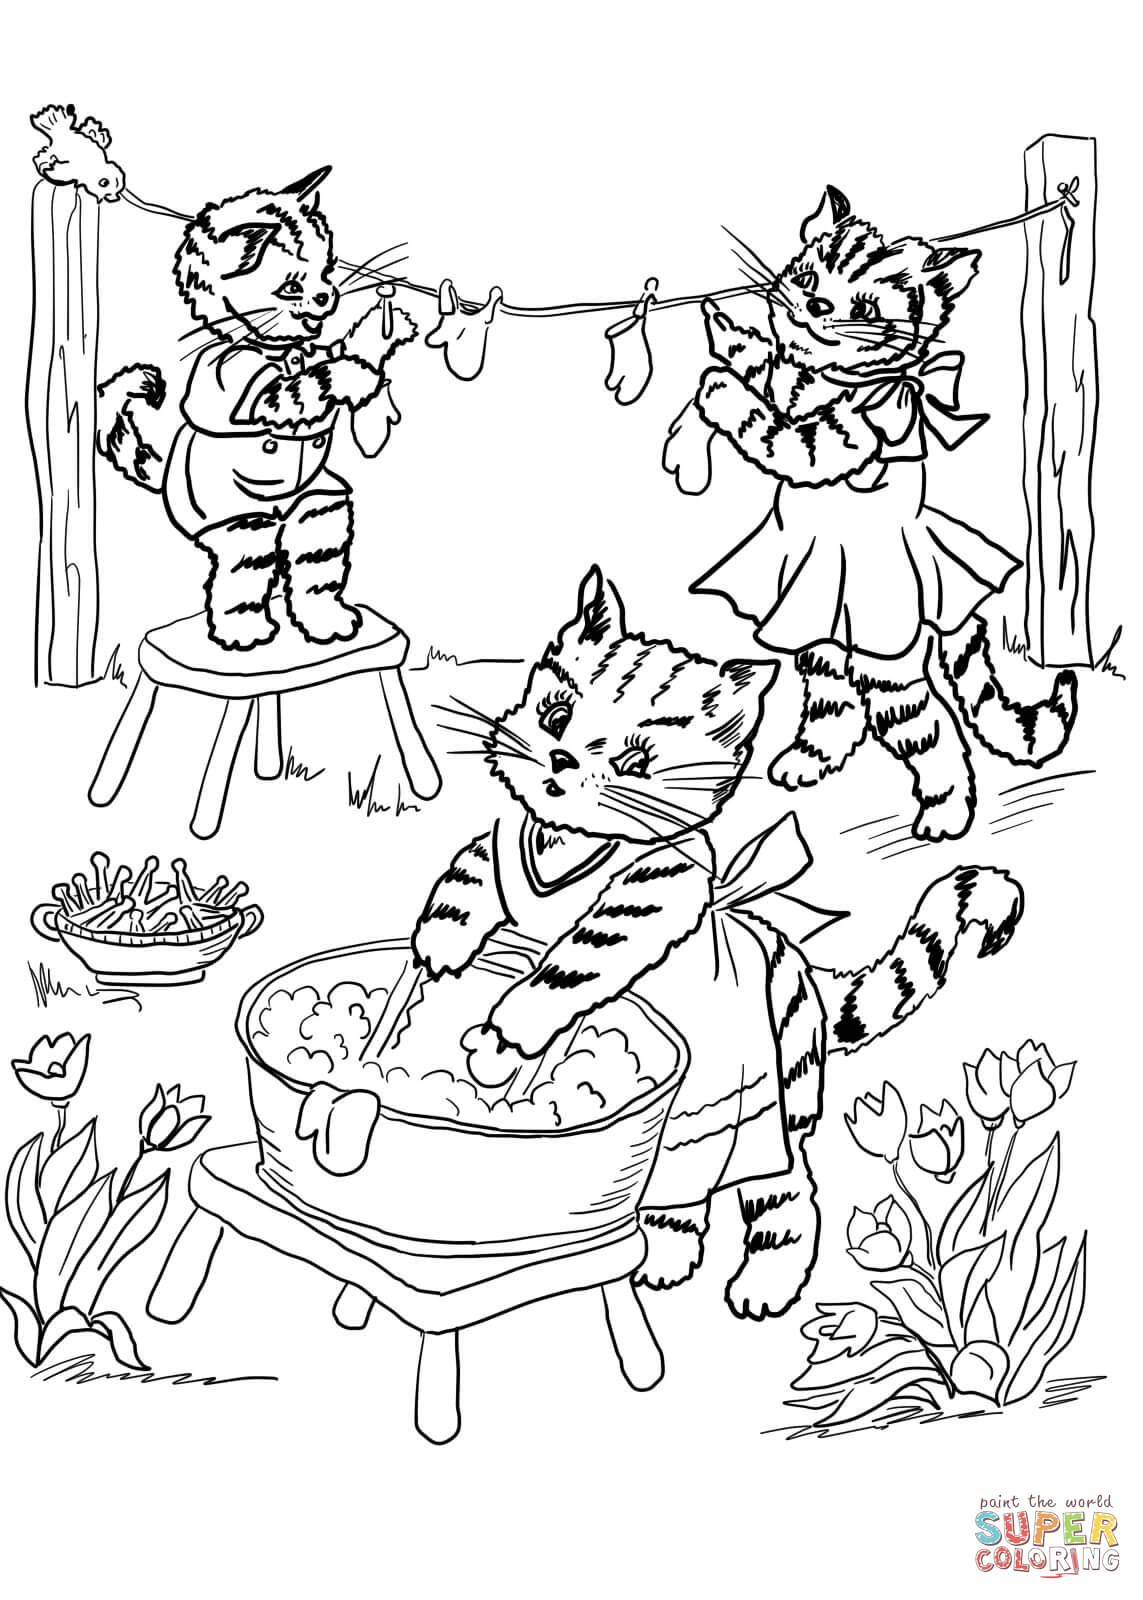 Three Little Kittens Coloring Page Free Printable Coloring Pages Kittens Coloring Kitten Coloring Book Coloring Pages